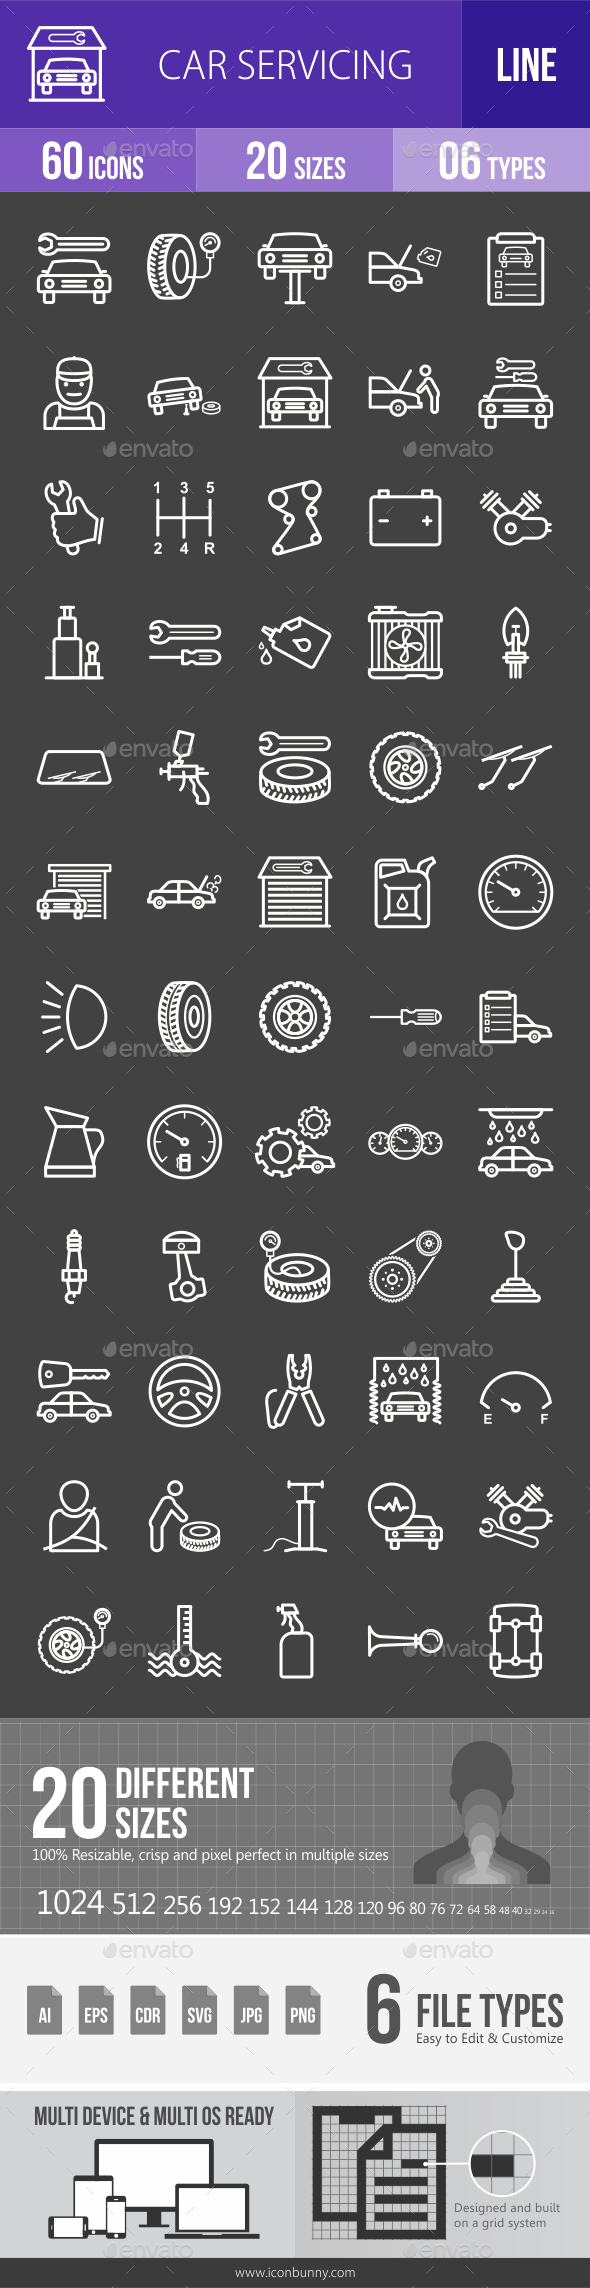 Car Servicing Line Inverted Icons - Icons